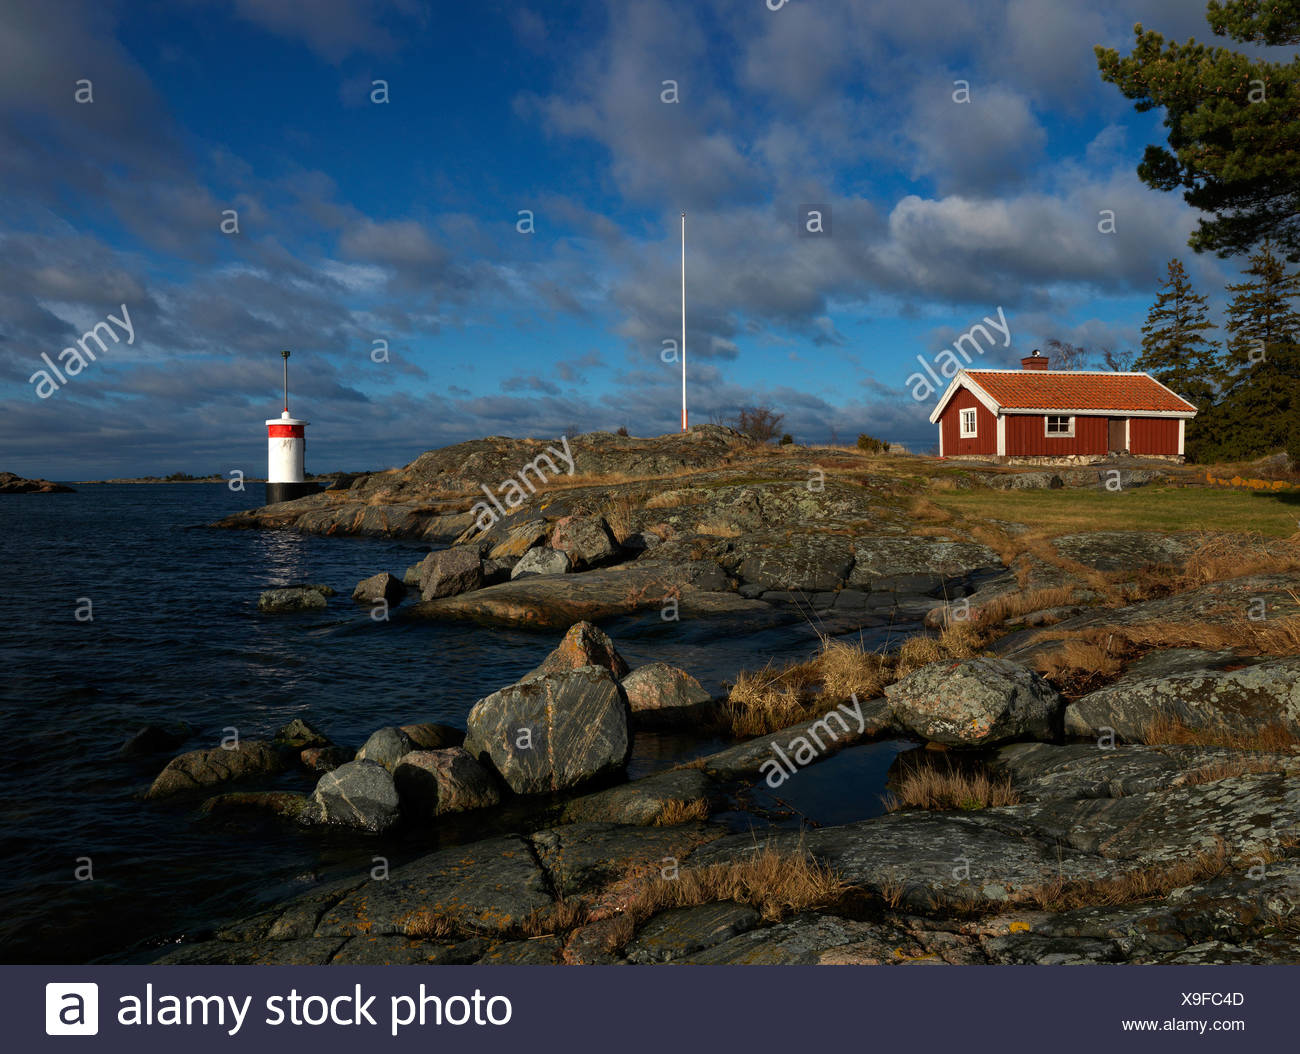 House and a lighthouse Tjust archipelago Sweden. - Stock Image